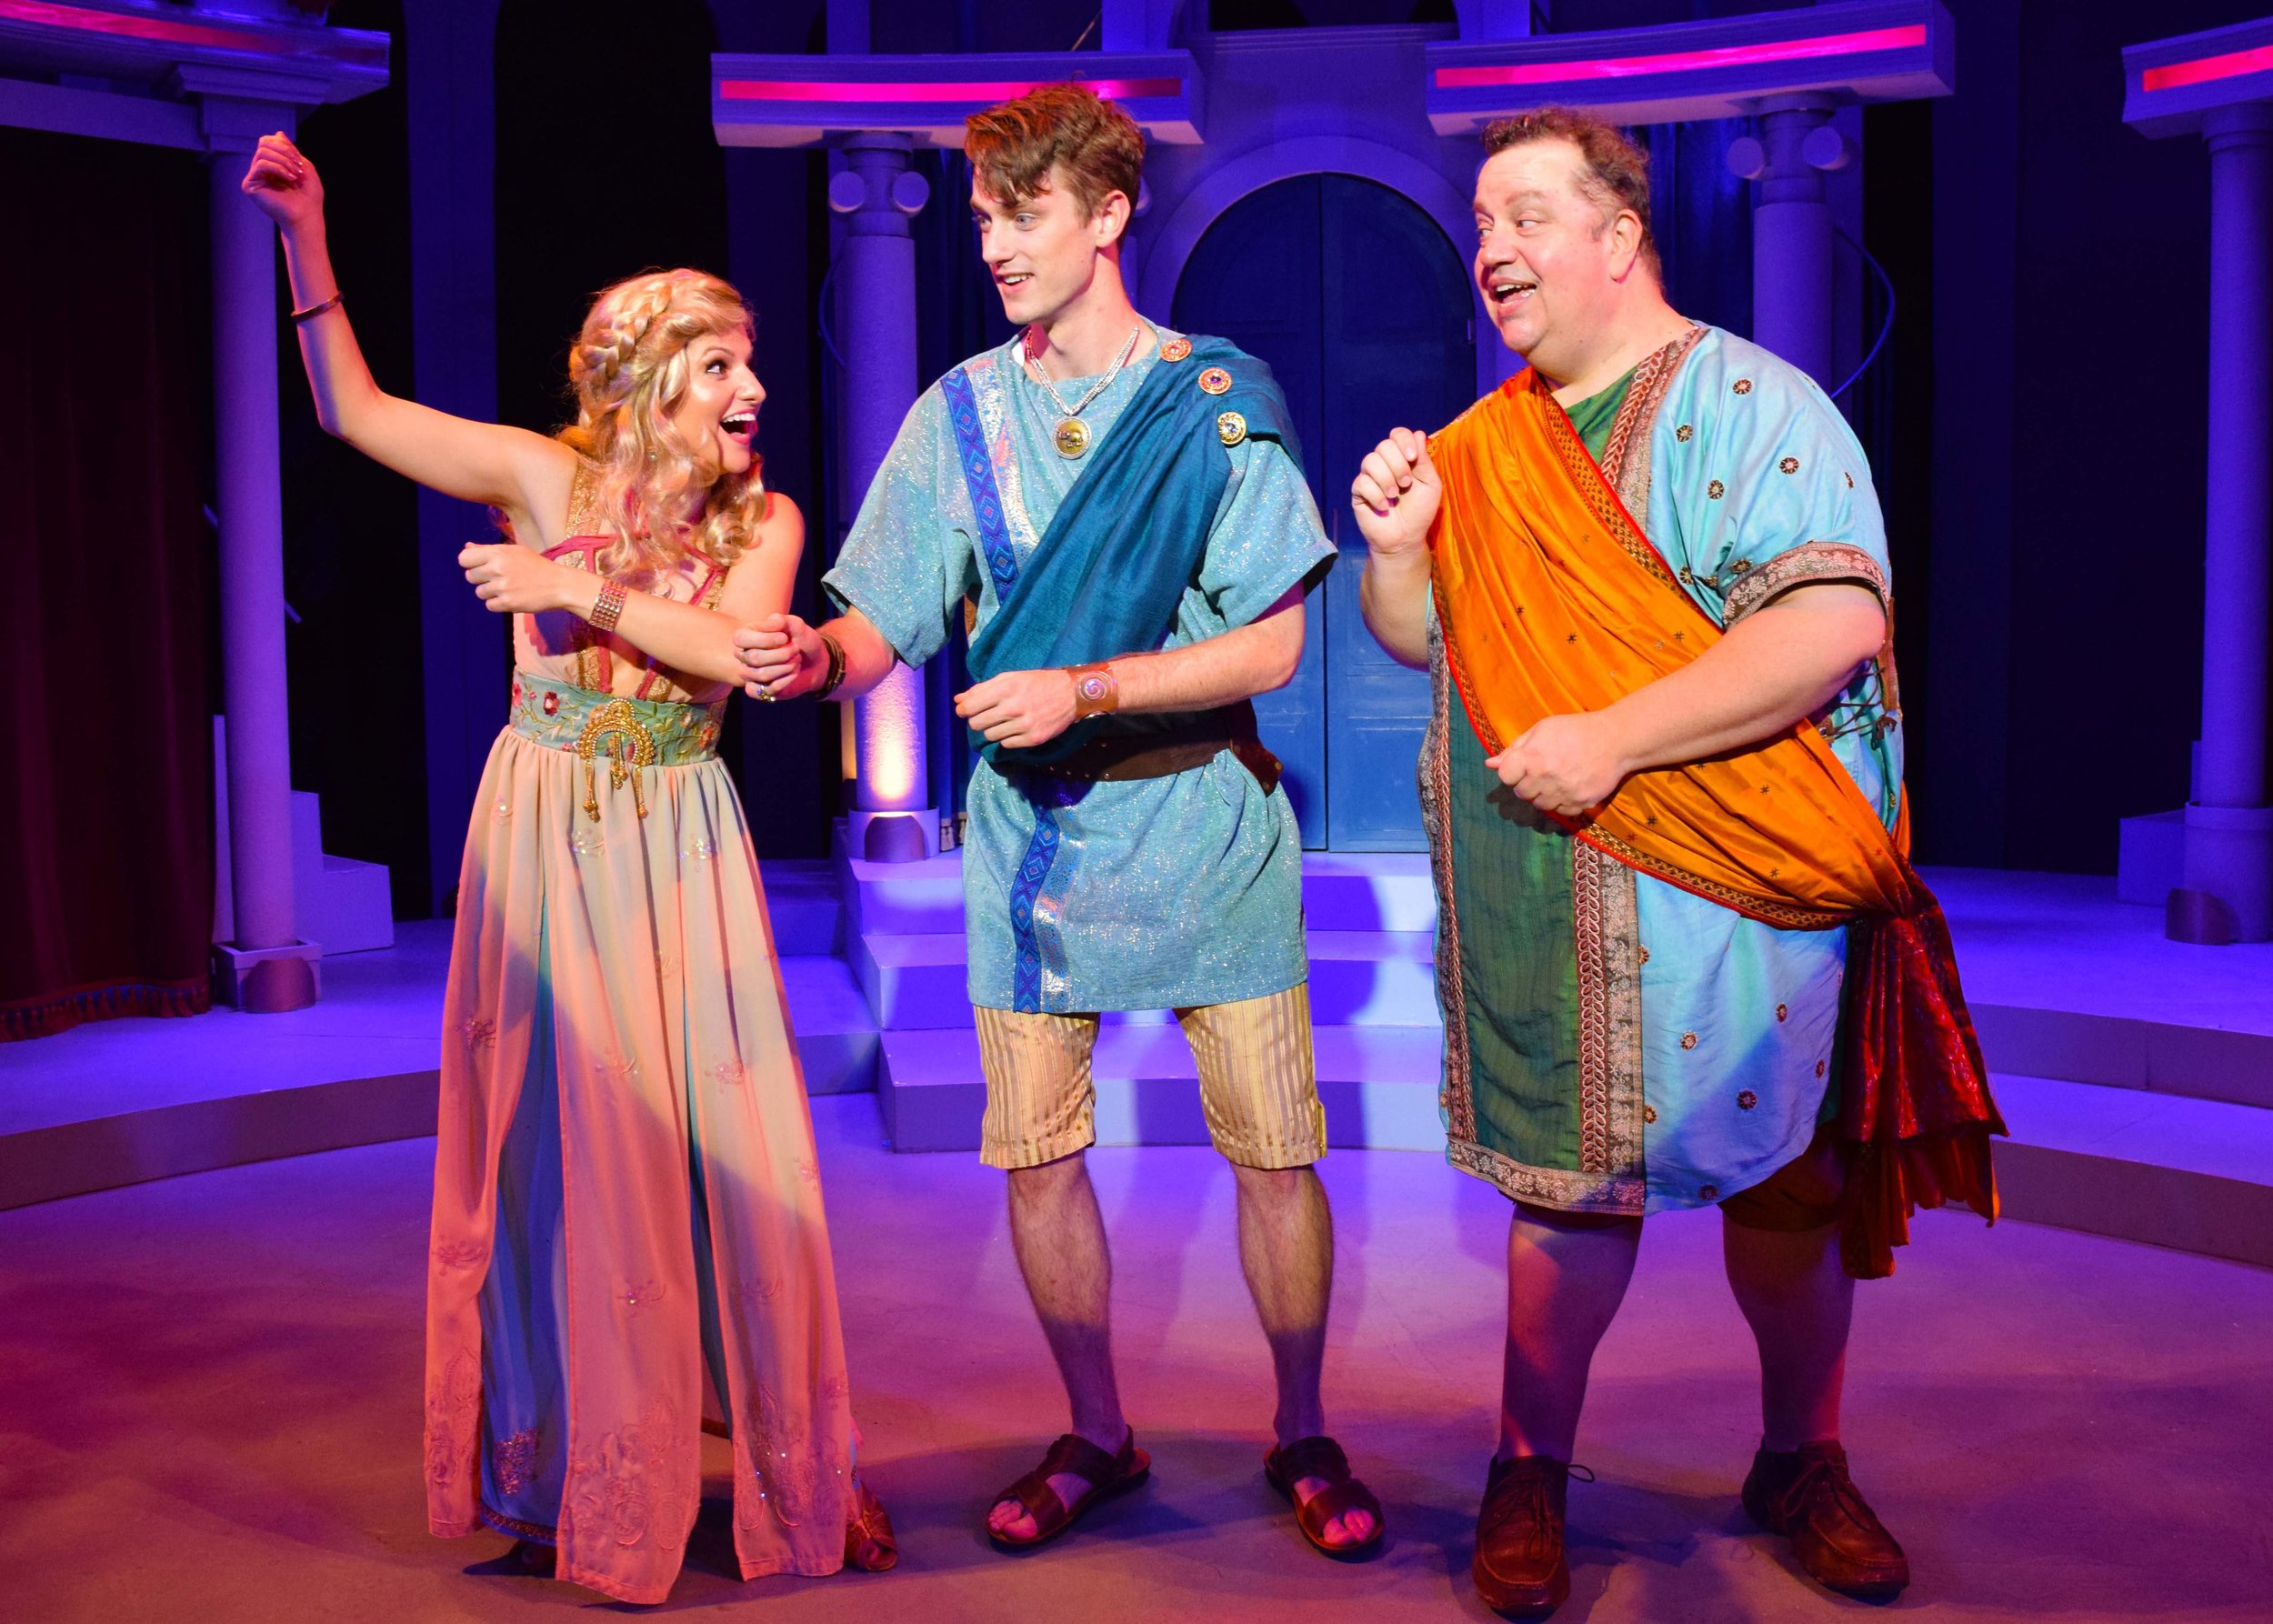 Philia (Nicole Kaplan), Hero (Michael Thomas Grant), Pseudolus (Paul C. Vogt) in A Funny Thing Happened On The Way To The Forum at the Garry Marshall Theatre. Photo by Chelsea Sutton.